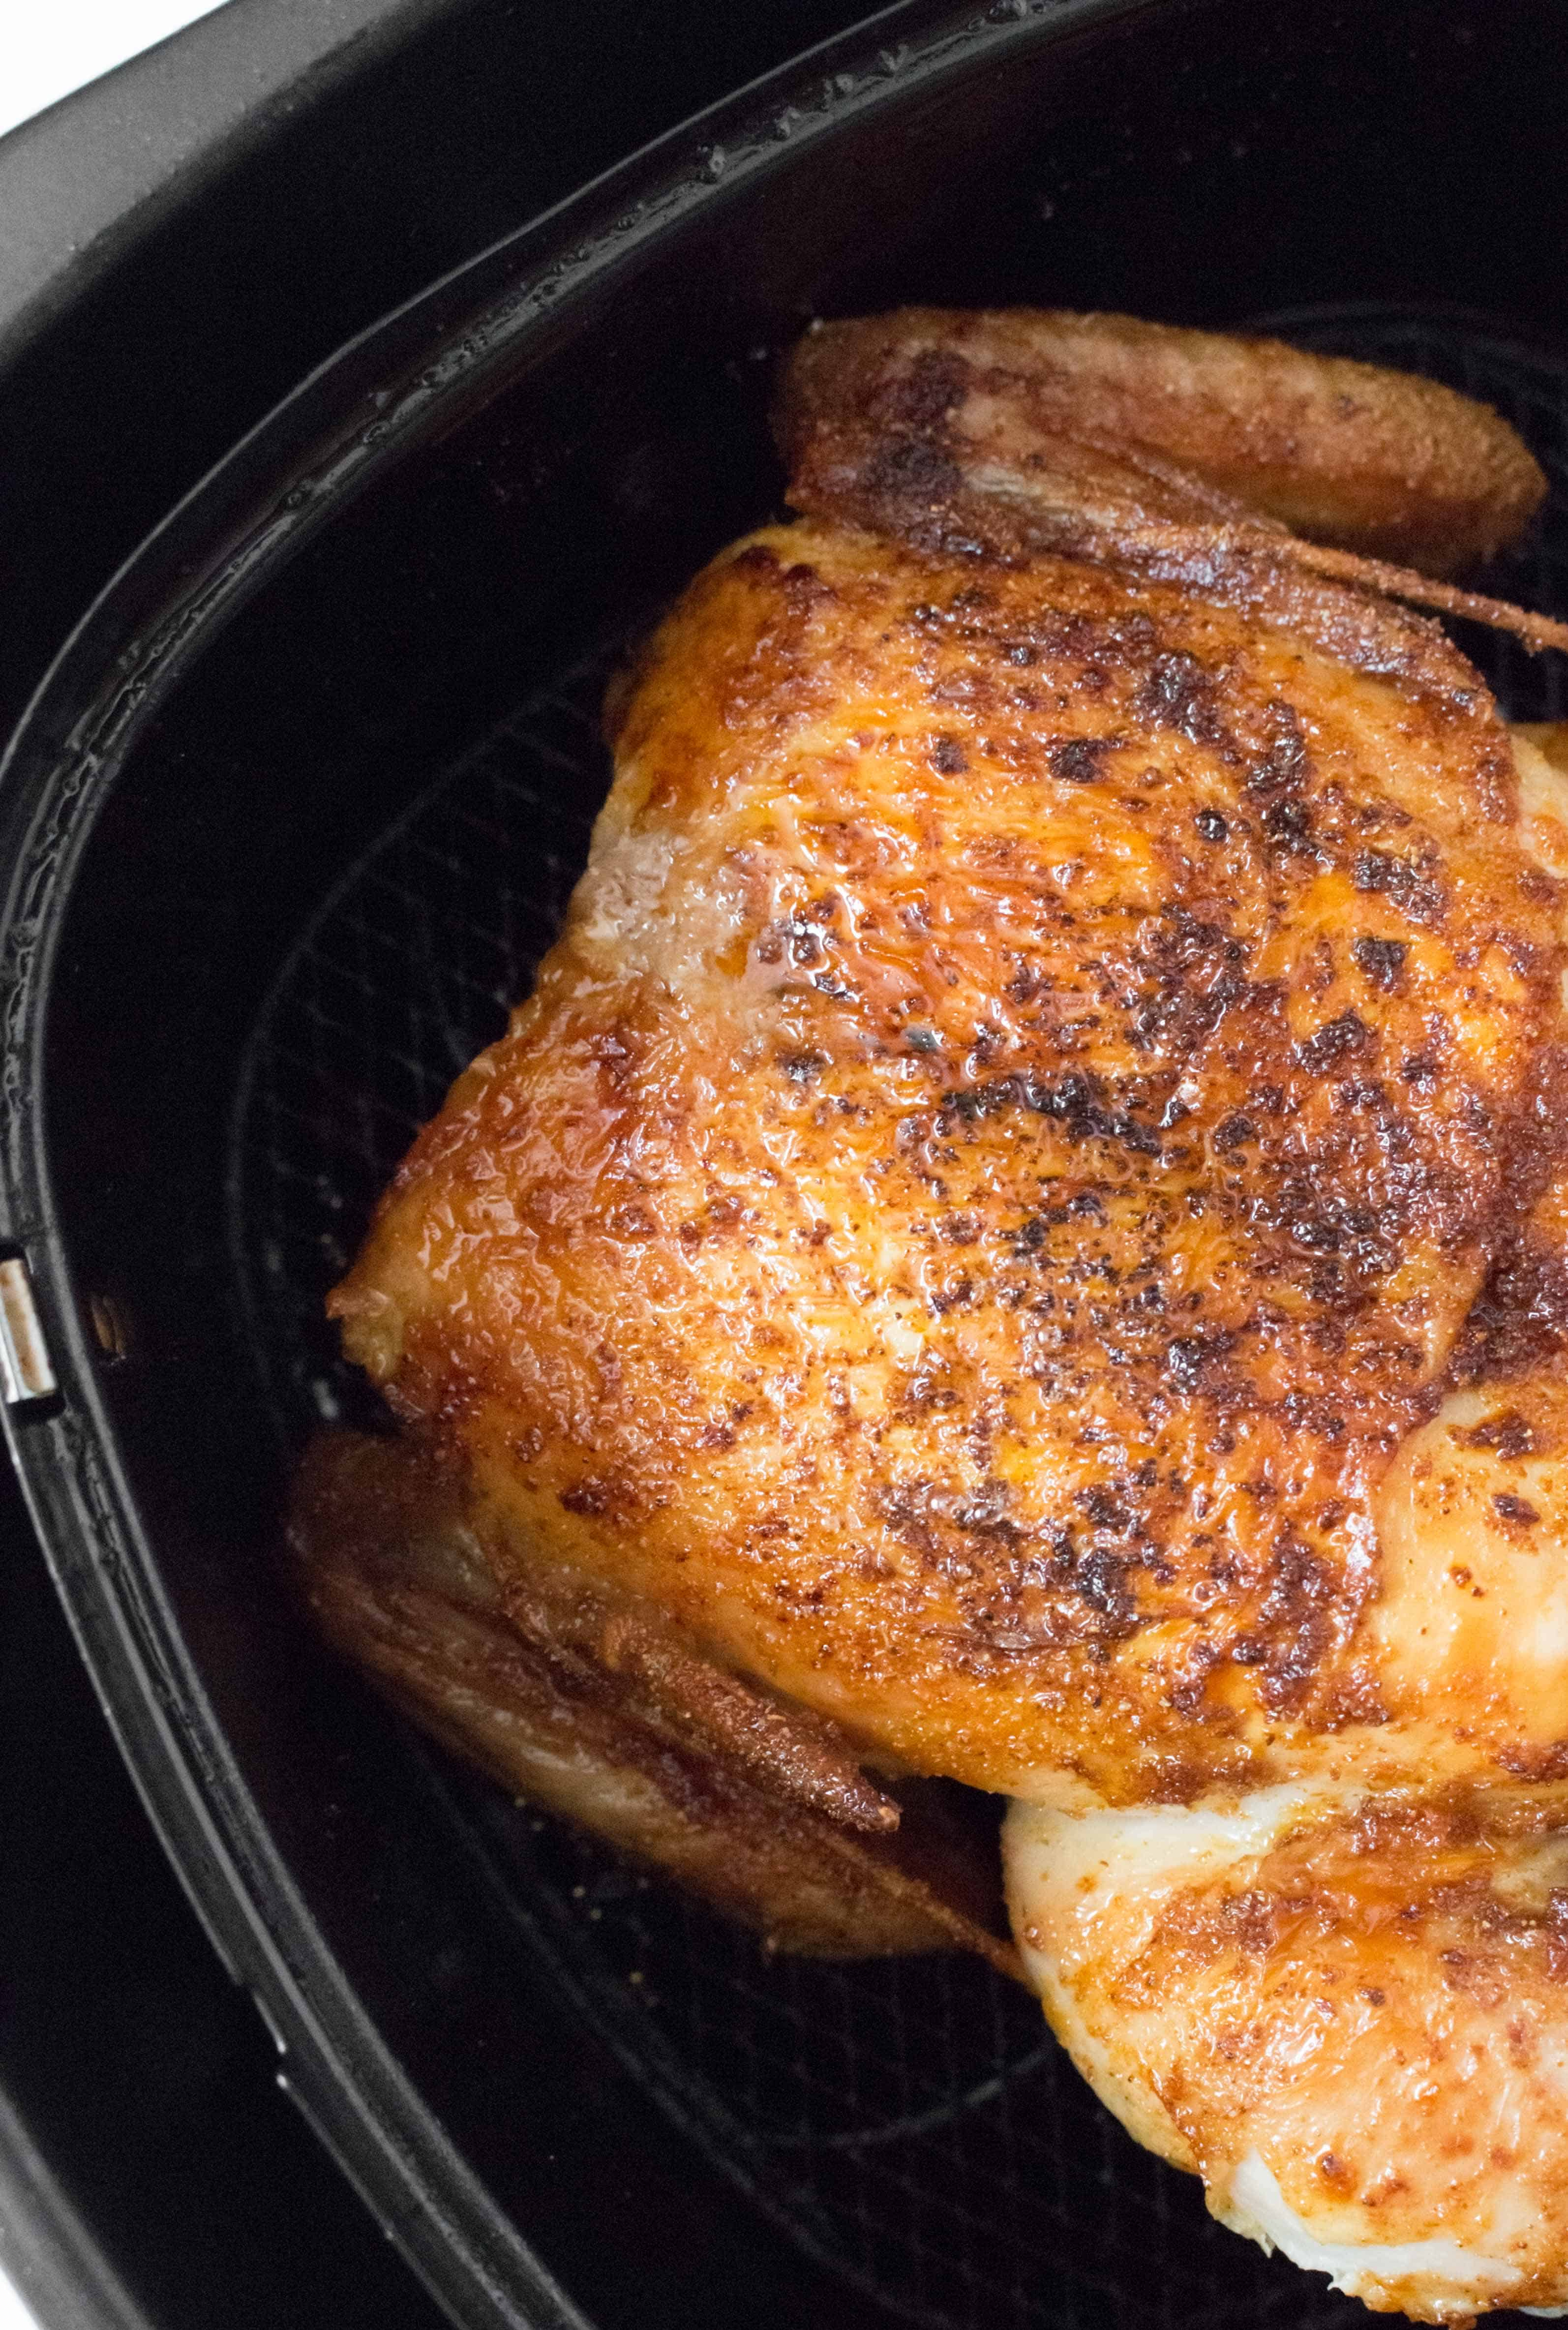 """How to roast whole chicken in an air fryer """"Width ="""" 3188 """"Height ="""" 4737 """"data-pin-description ="""" Do you have an air fryer and want juicy and tender roasted chicken? With completely moist and crispy skin, do it in a healthy chicken air mill in less than 30 minutes. """"srcset ="""" https://carmyy.com/wp-content/uploads/2019/07/airfryer-whole-chicken-4.jpg 3188w, https://carmyy.com/wp-content/uploads/2019/07 /airfryer-whole-chicken-4-202x300.jpg 202w, https://carmyy.com/wp-content/uploads/2019/07/airfryer-whole-chicken-4-768x1141.jpg 768w, https://carmyy .com / wp-content / uploads / 2019/07 / airfryer-Whole-chicken-4-689x1024.jpg 689w """"size ="""" (max width: 3188px) 100vw, 3188px"""